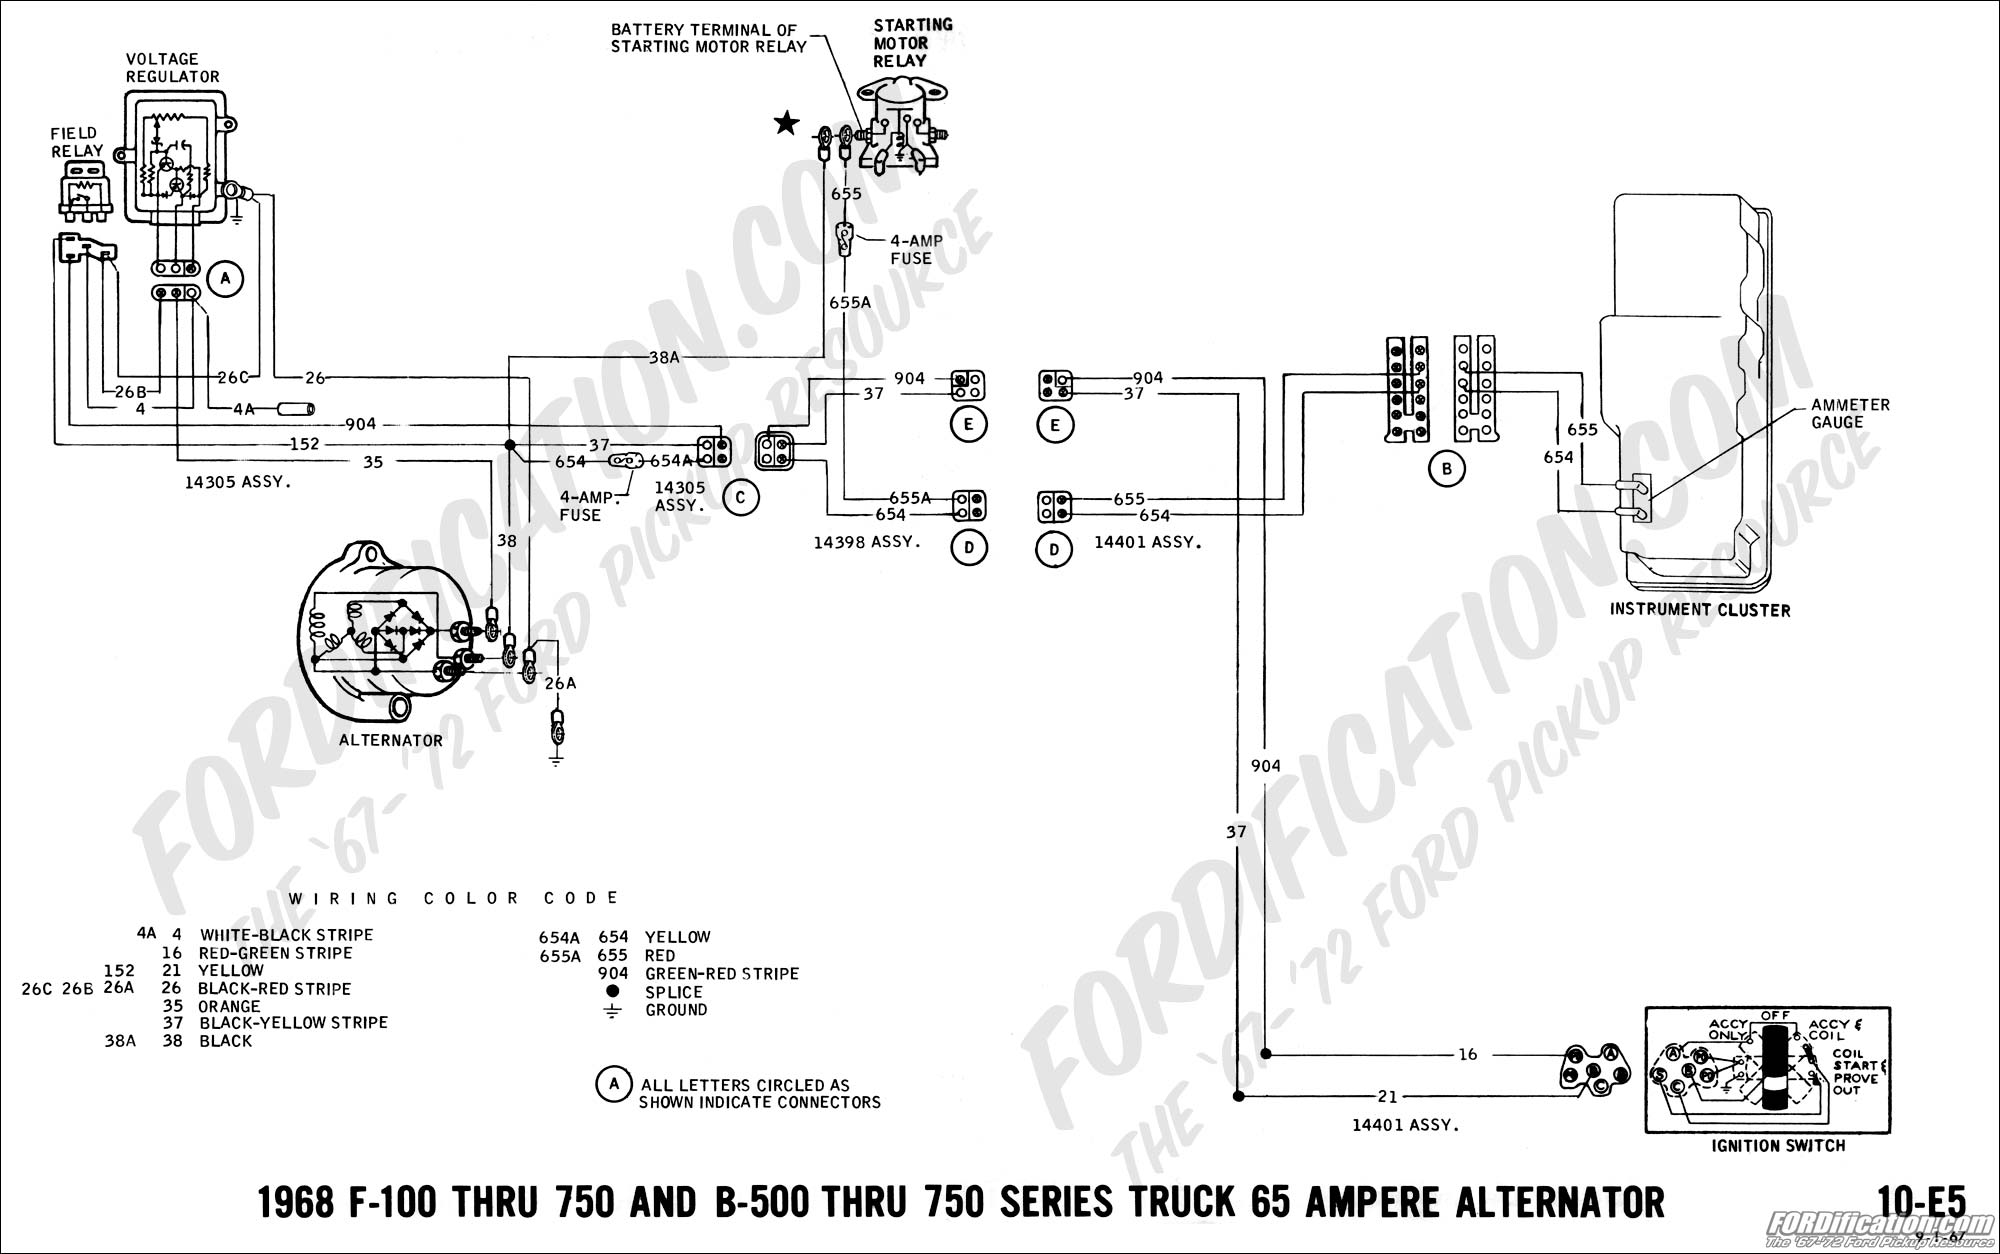 68 07 ford truck technical drawings and schematics section h wiring 1988 ford ranger alternator wiring diagram at crackthecode.co